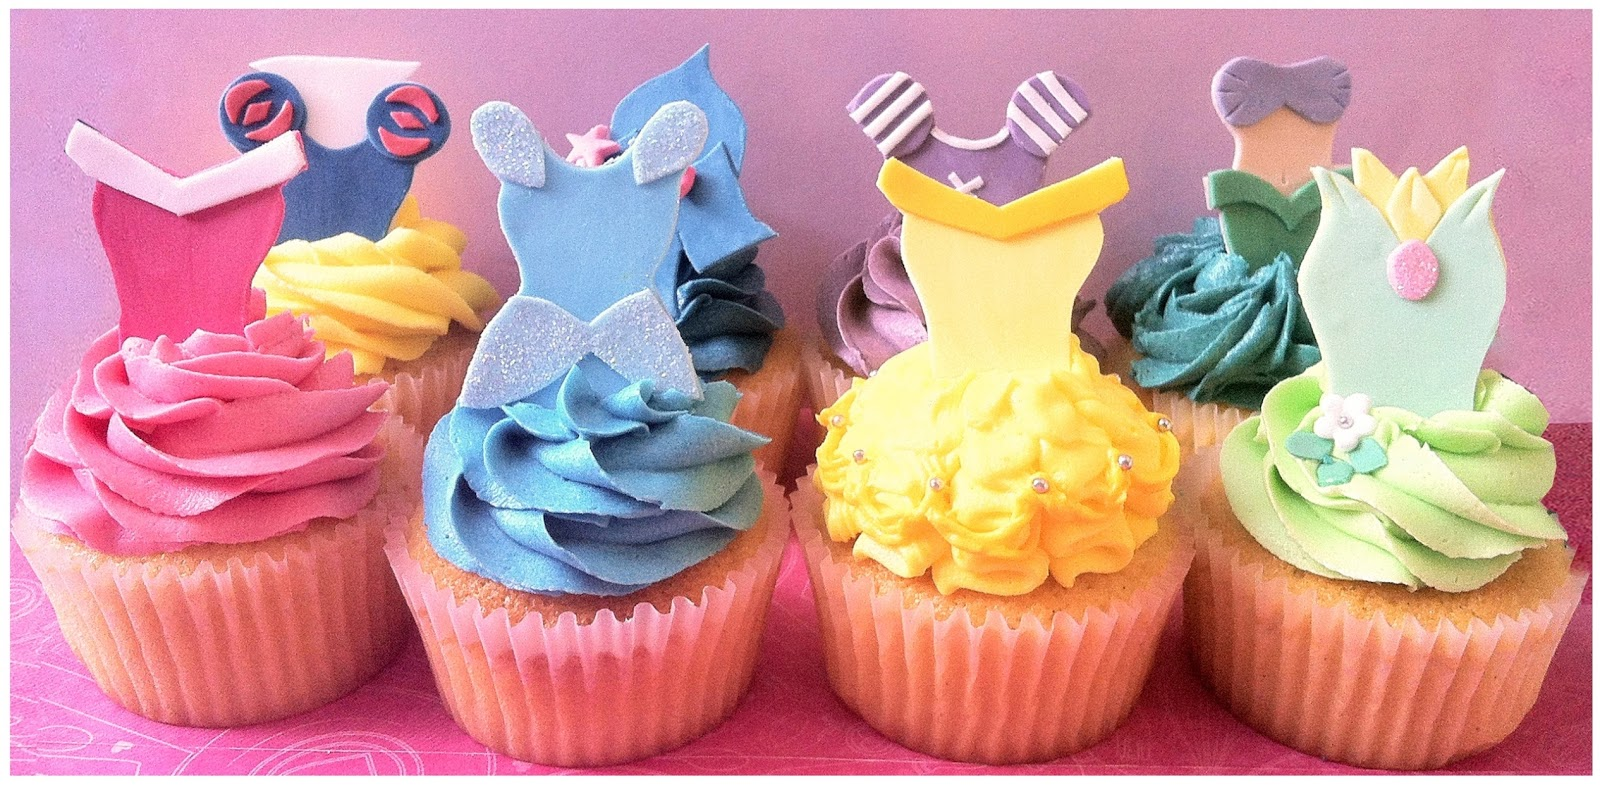 Needlessto Say Mini Mousey LOVED The Cupcakes She Looked So Chuffed